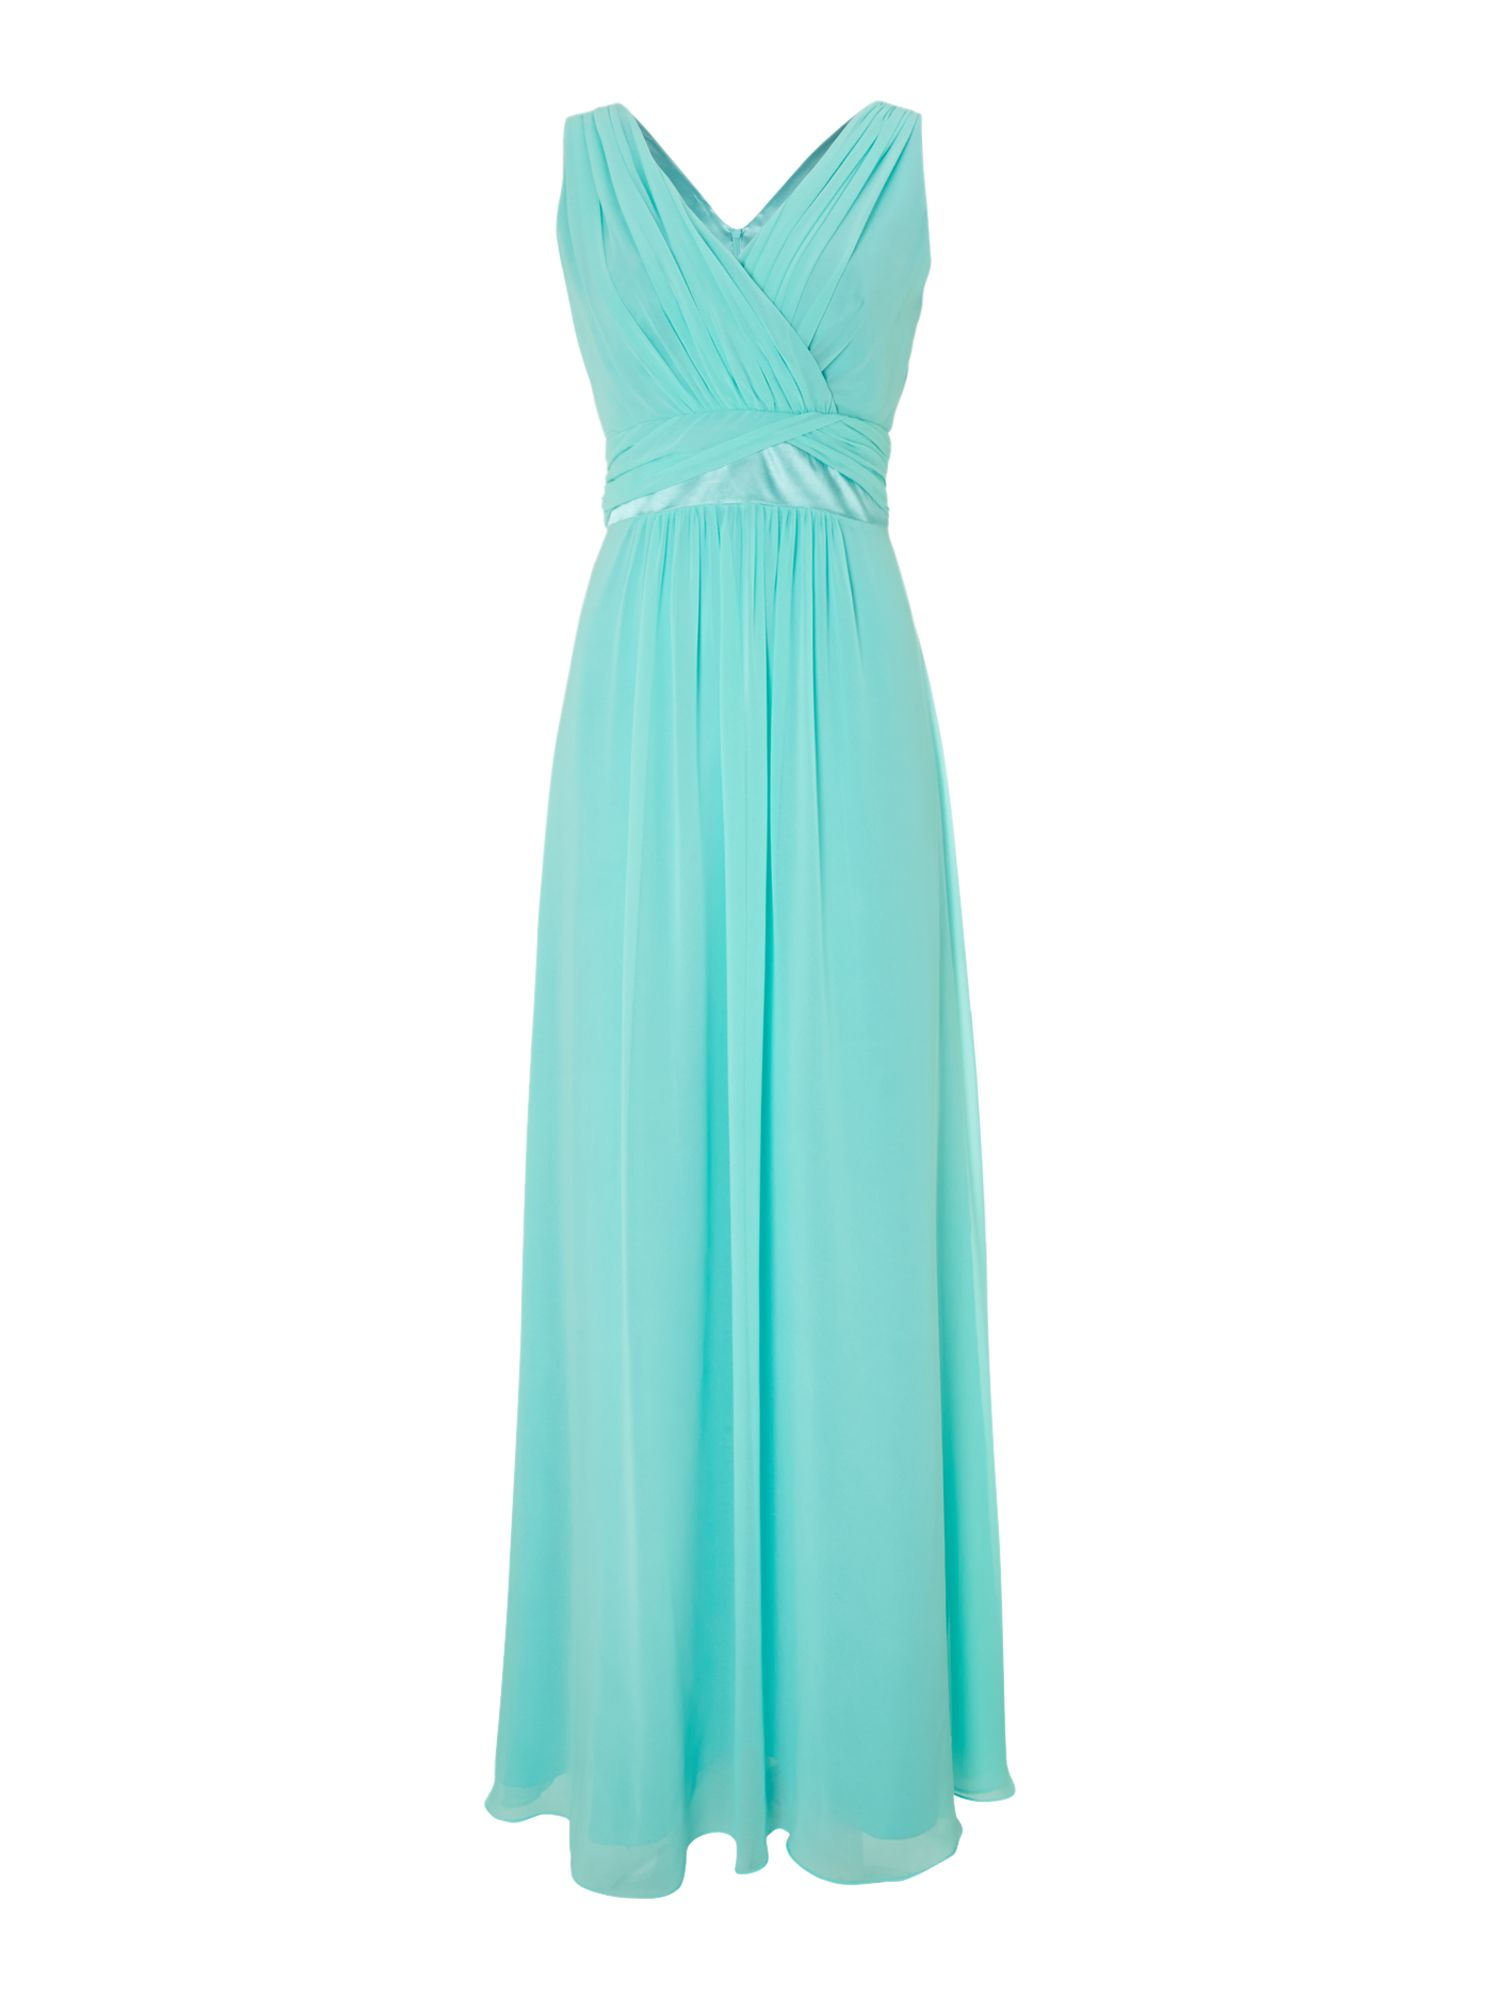 Bridesmaid Chiffon Waist Detail Dress